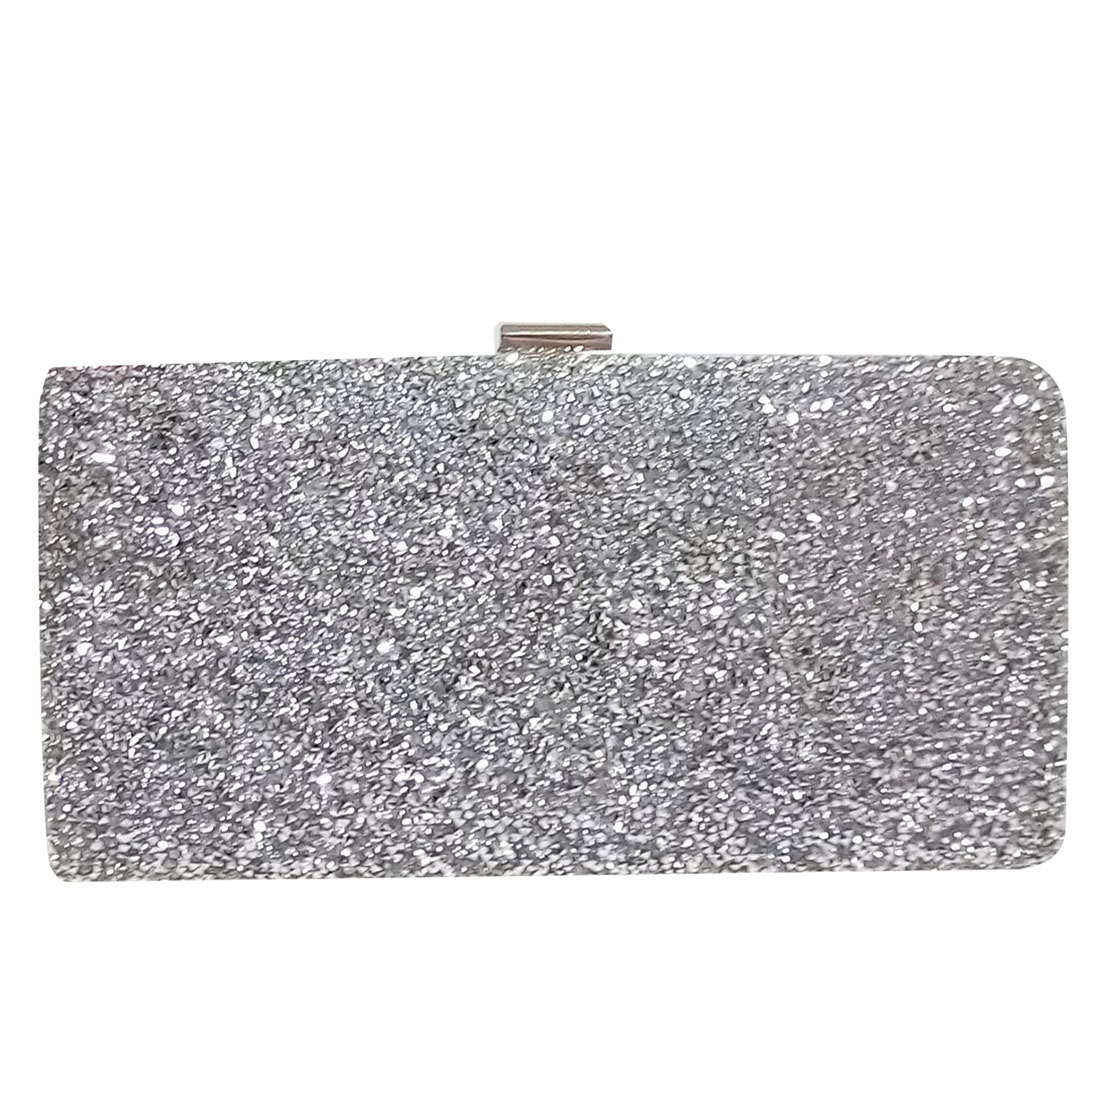 Hot Fashion Woman Evening bag Women Diamond Rhinestone Clutch Crystal Day Clutch Wallet Wedding Purse Party Banquet